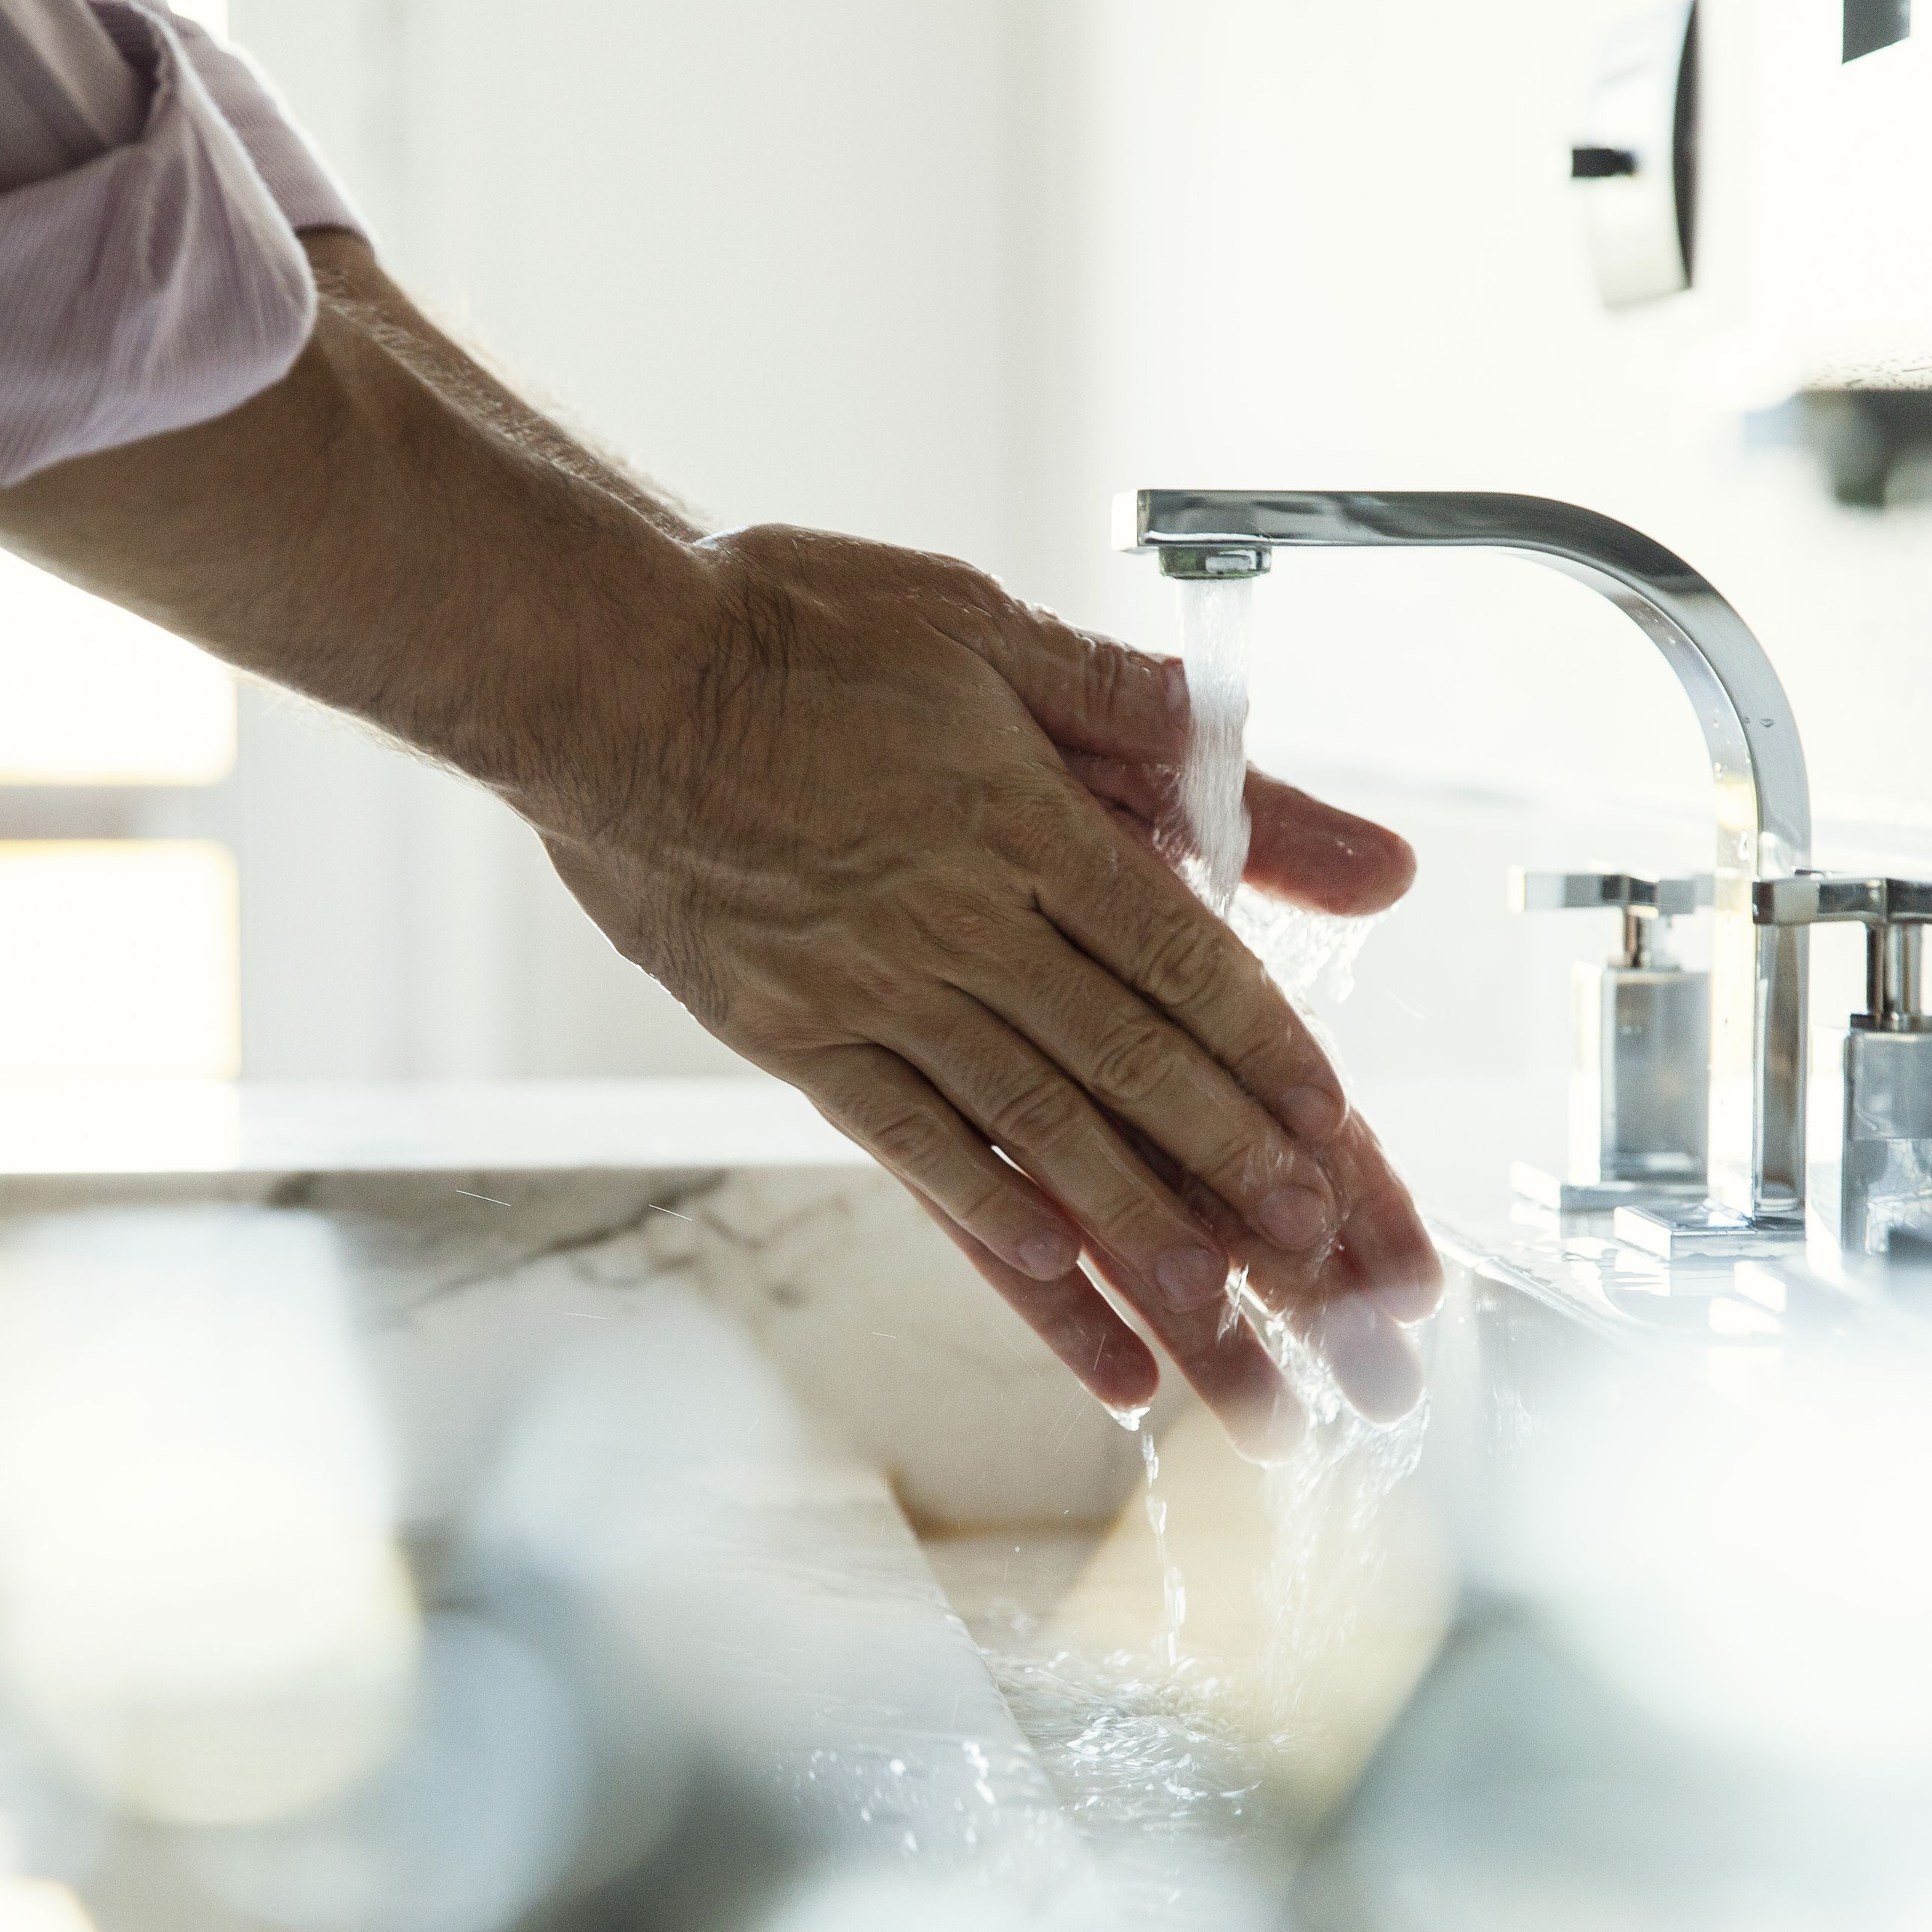 Yes, You Still Need to Wash Your Hands When You Use the Bathroom at Home